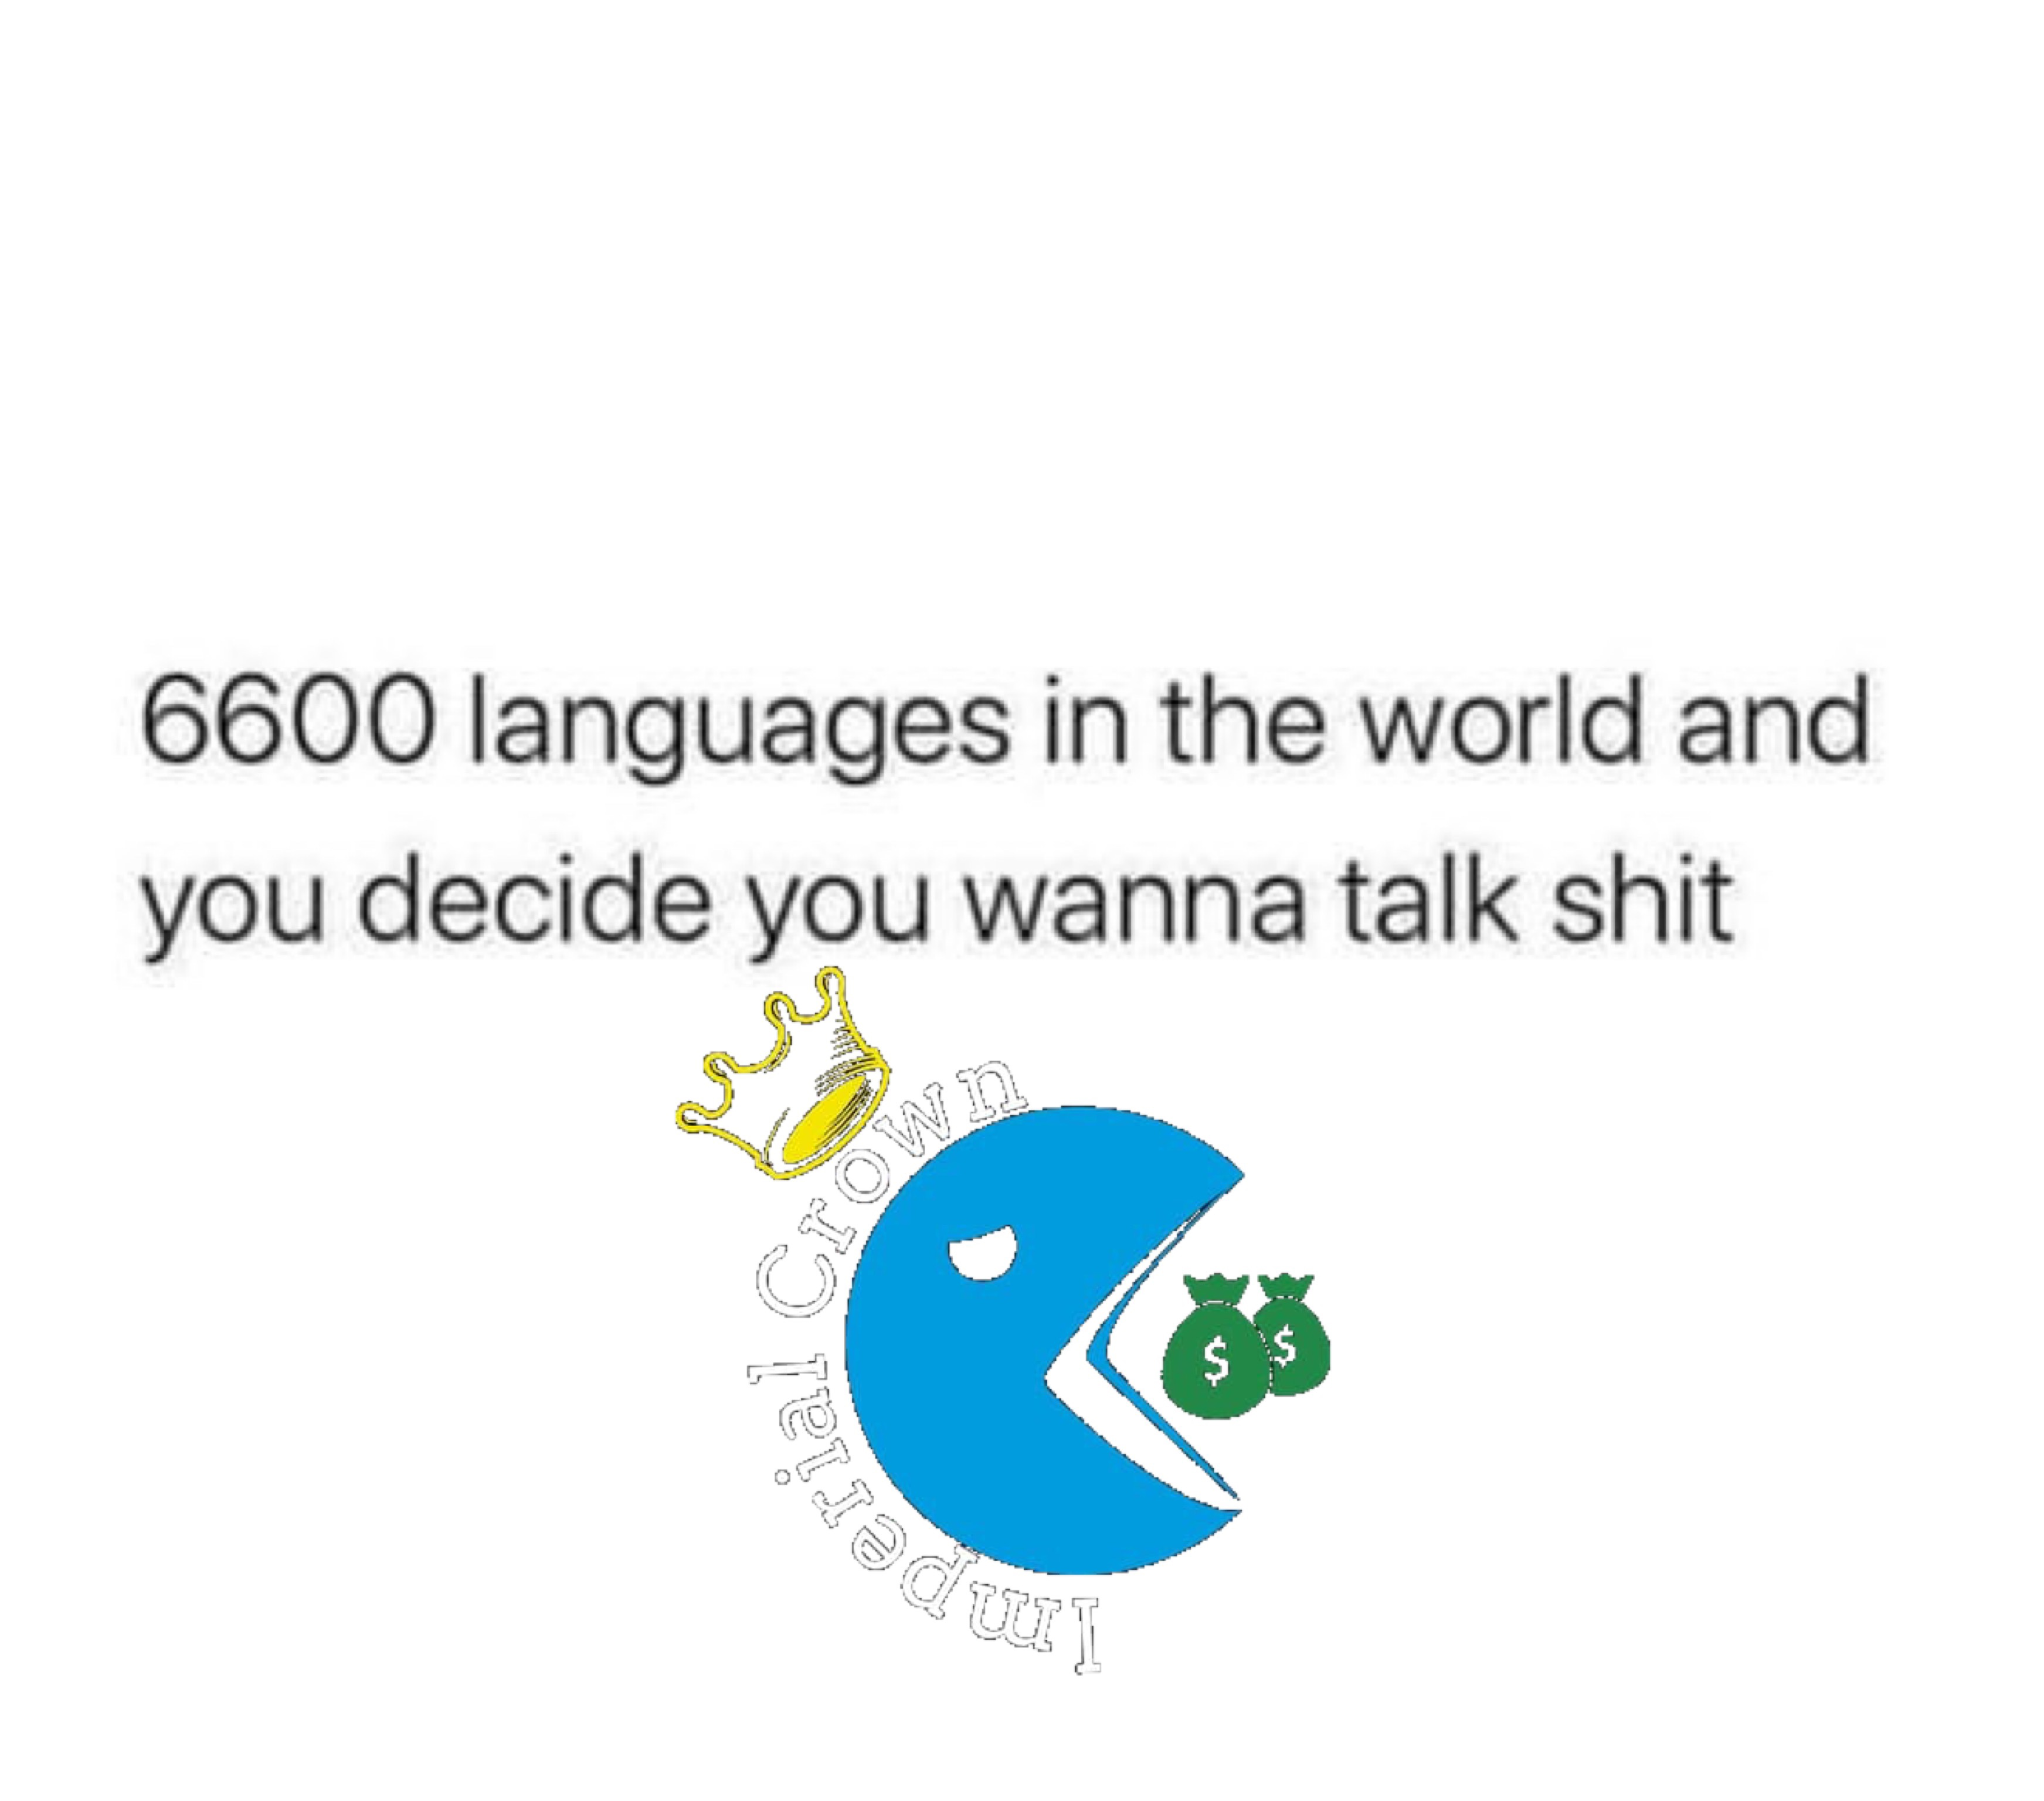 6600 languages in the world and you decide you wanna talk shit